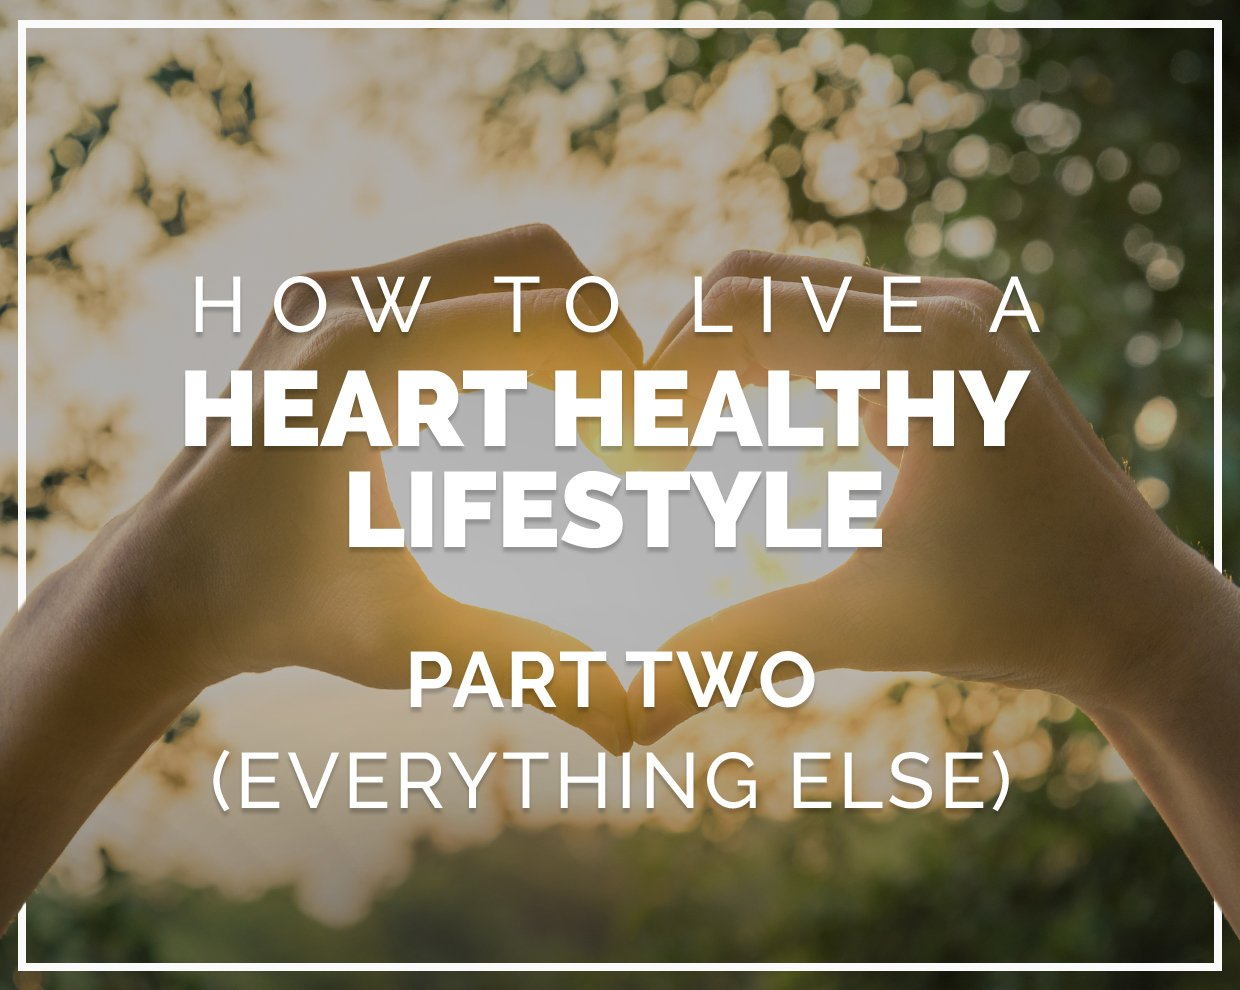 How to live a heart healthy lifestyle - Part Two